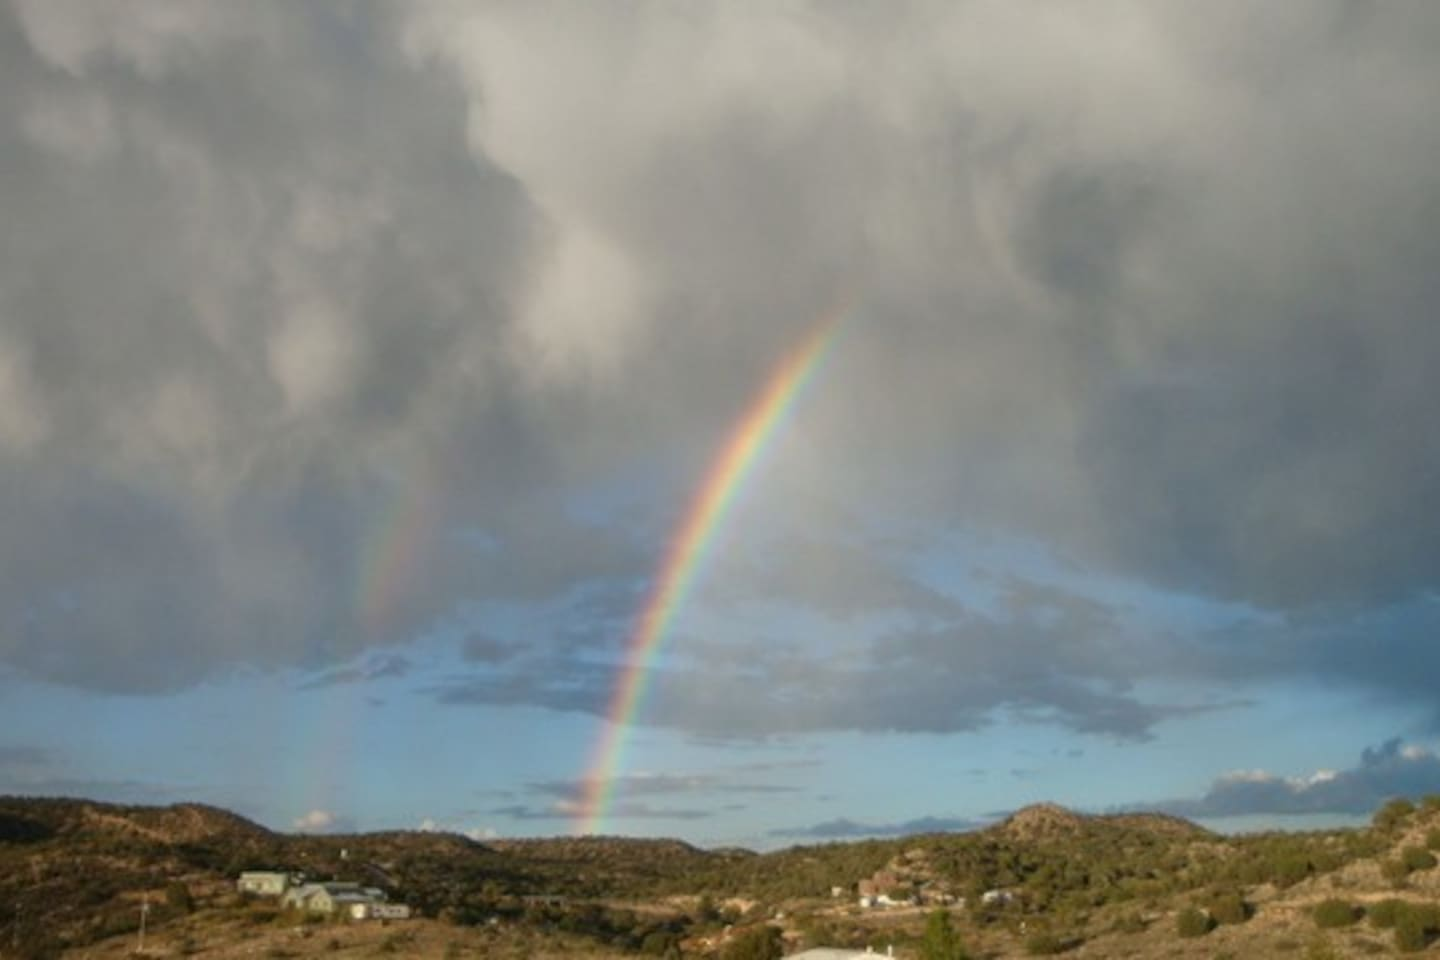 Rainbow viewed from the front of the home.